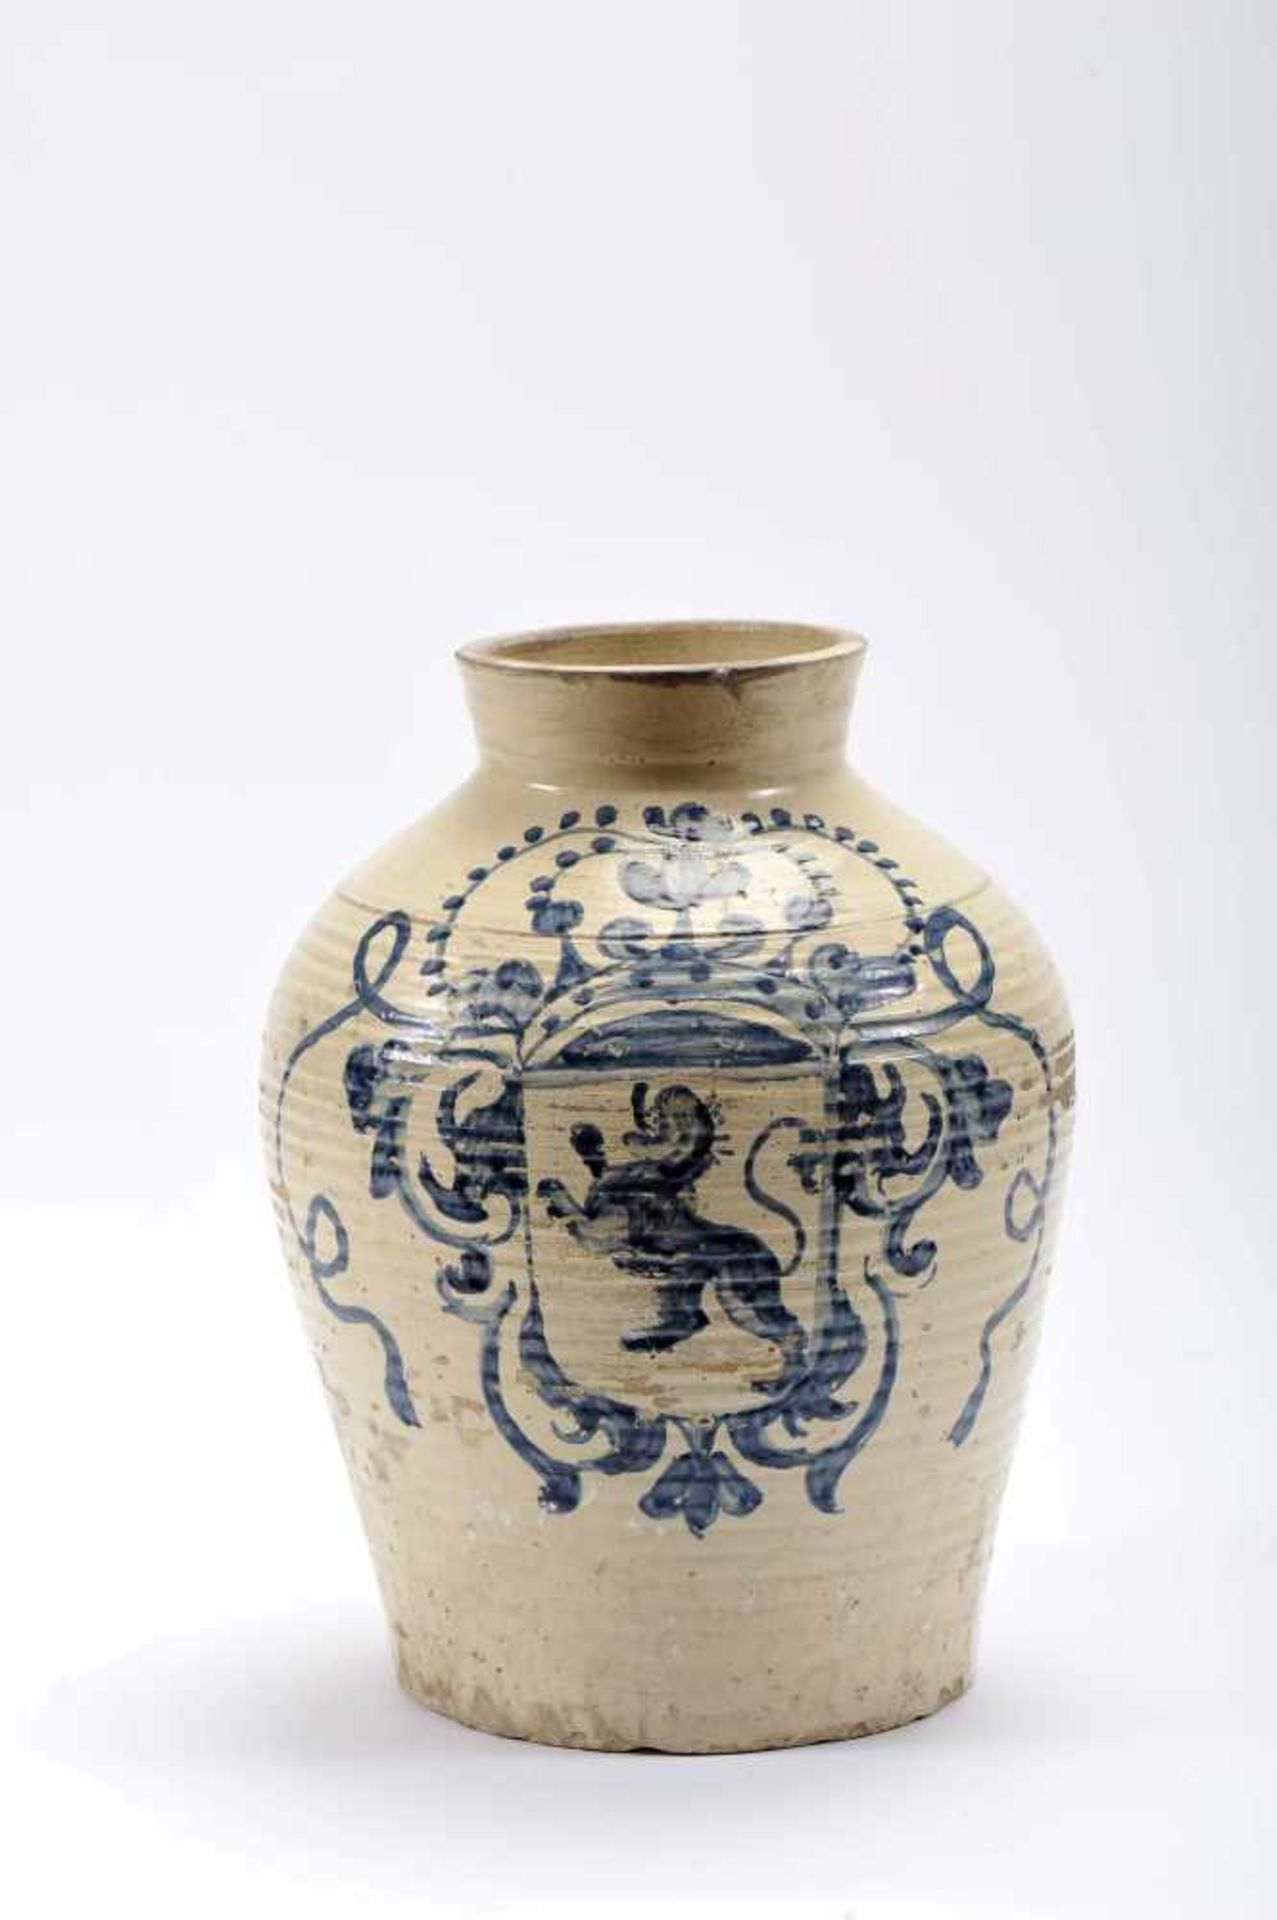 "Los 44 - A PotA Pot, faience, blue decoration ""Coat of arms The kingdom of Léon"", Spanish, 17th/18th C.,..."